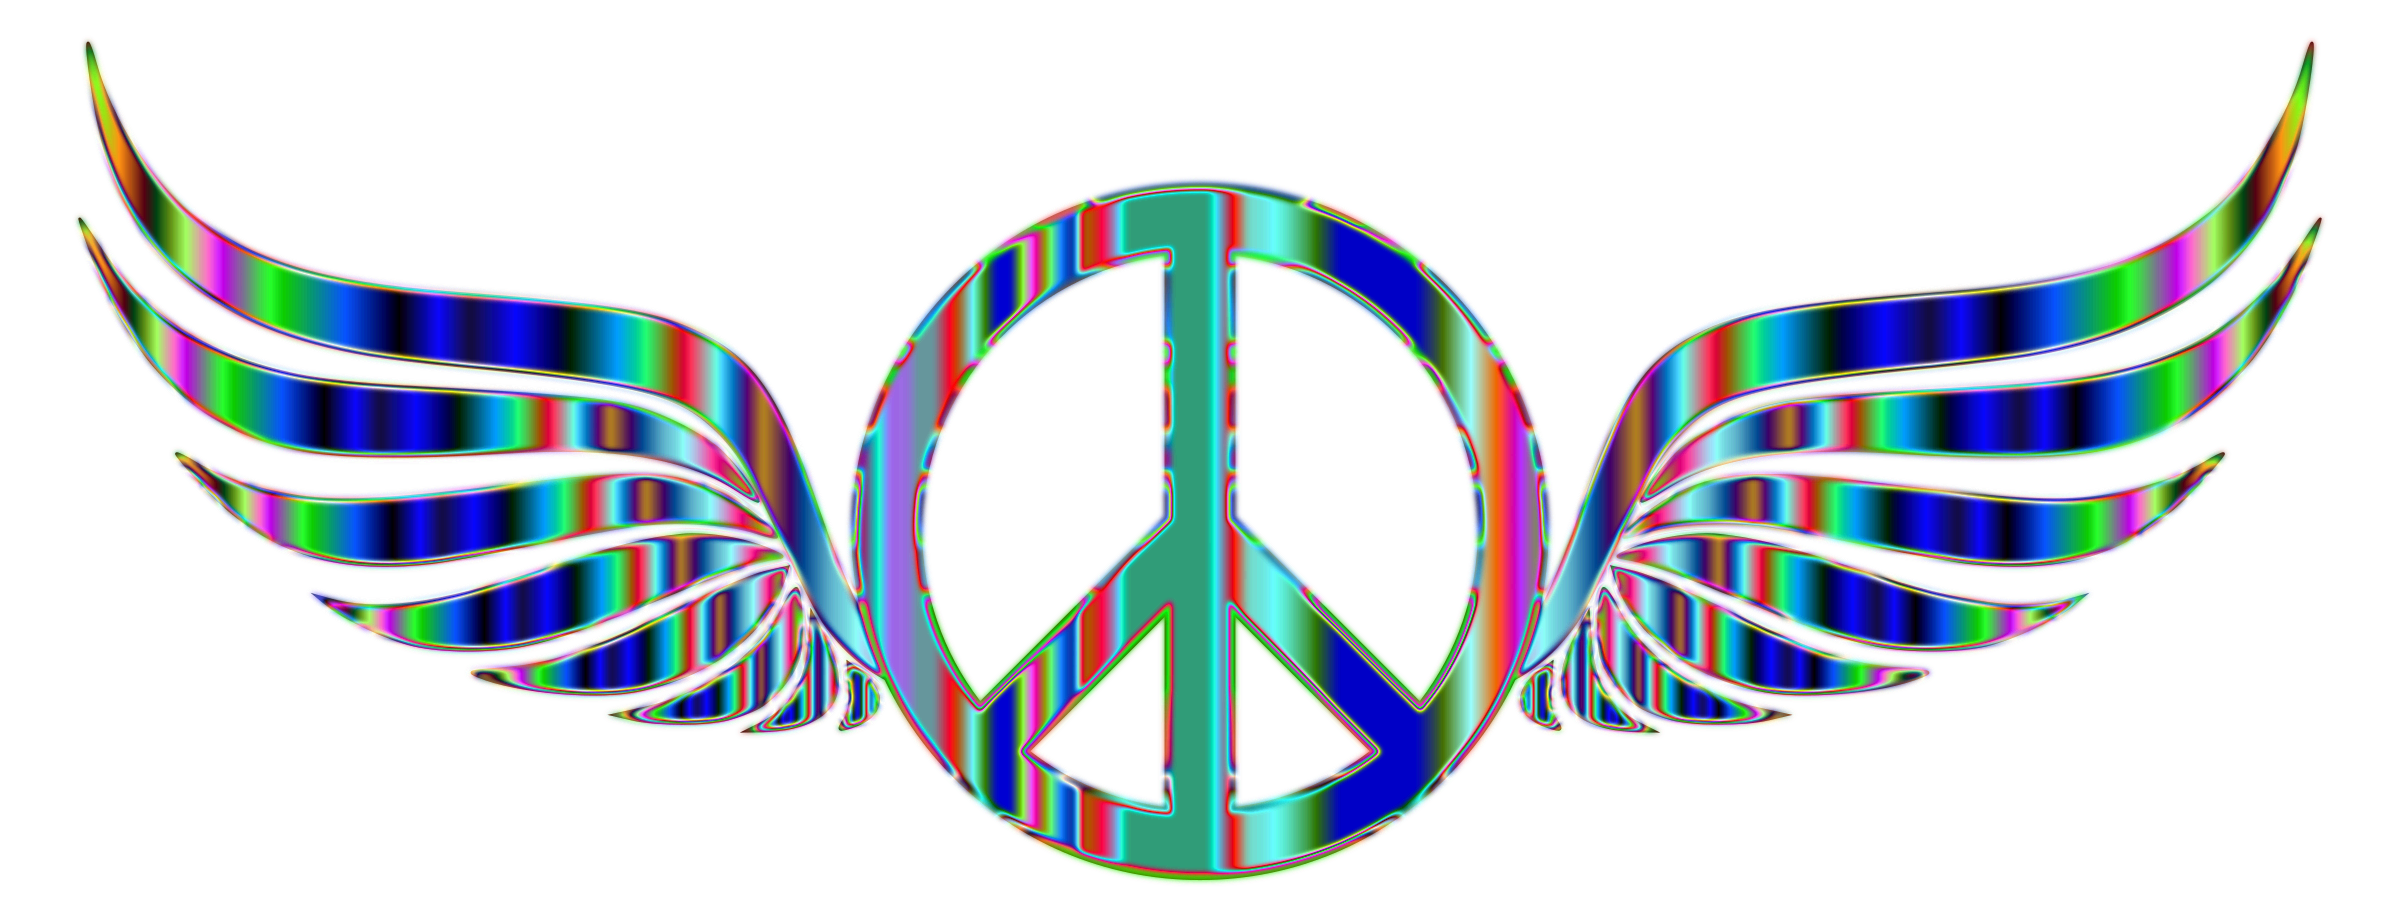 Gold Peace Sign Wings Psychedelic 2 No Background by GDJ